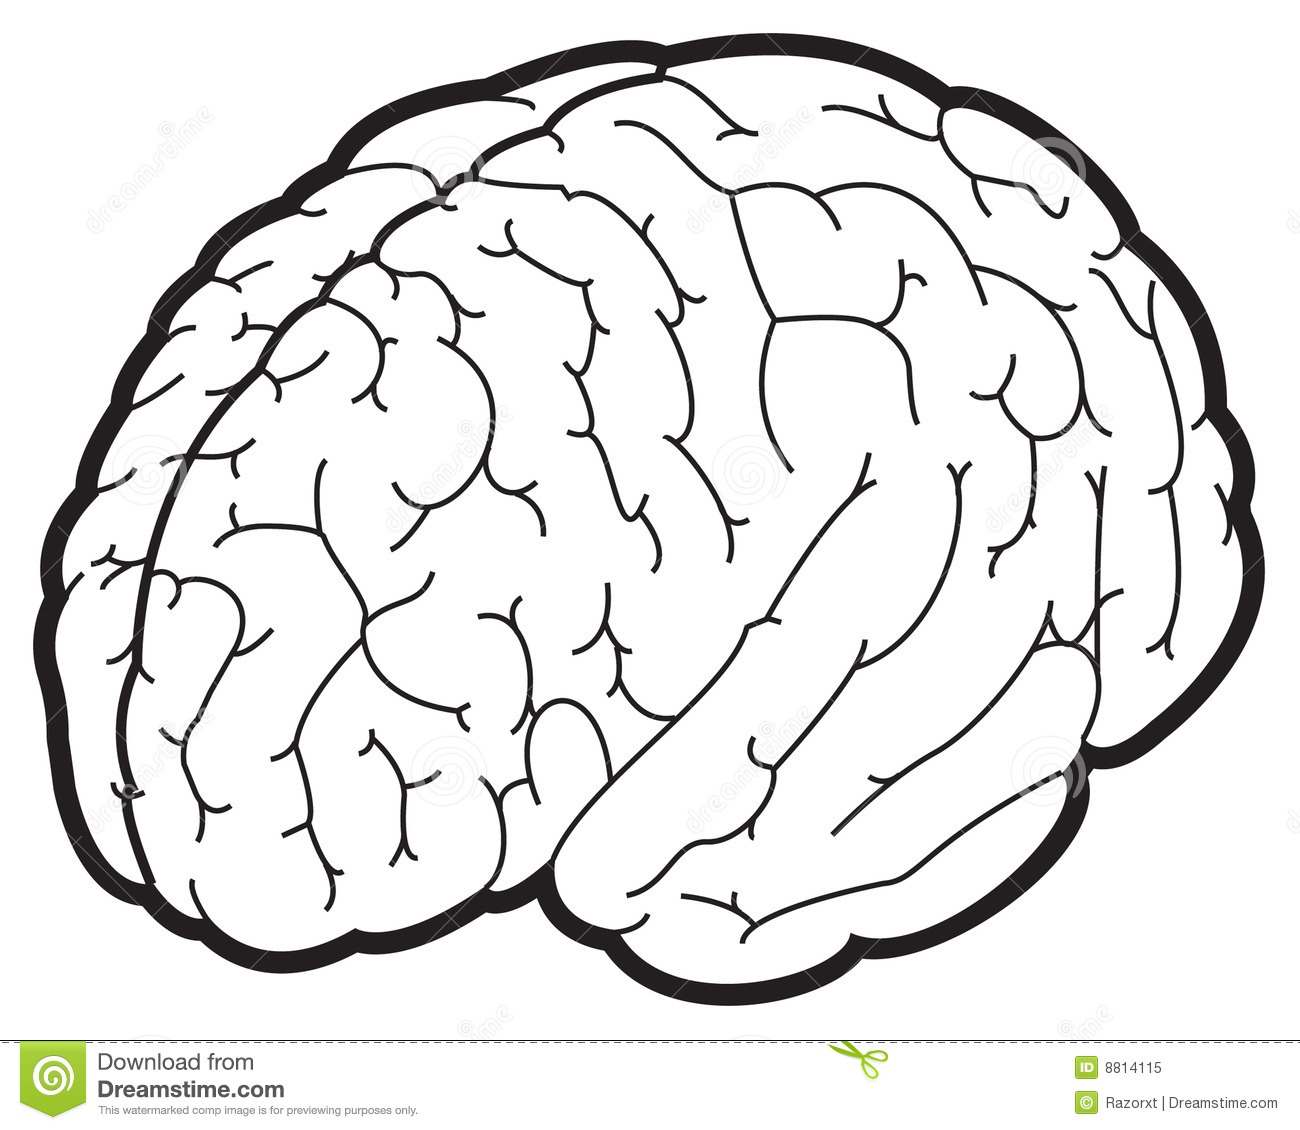 illustration of a brain royalty free stock photo